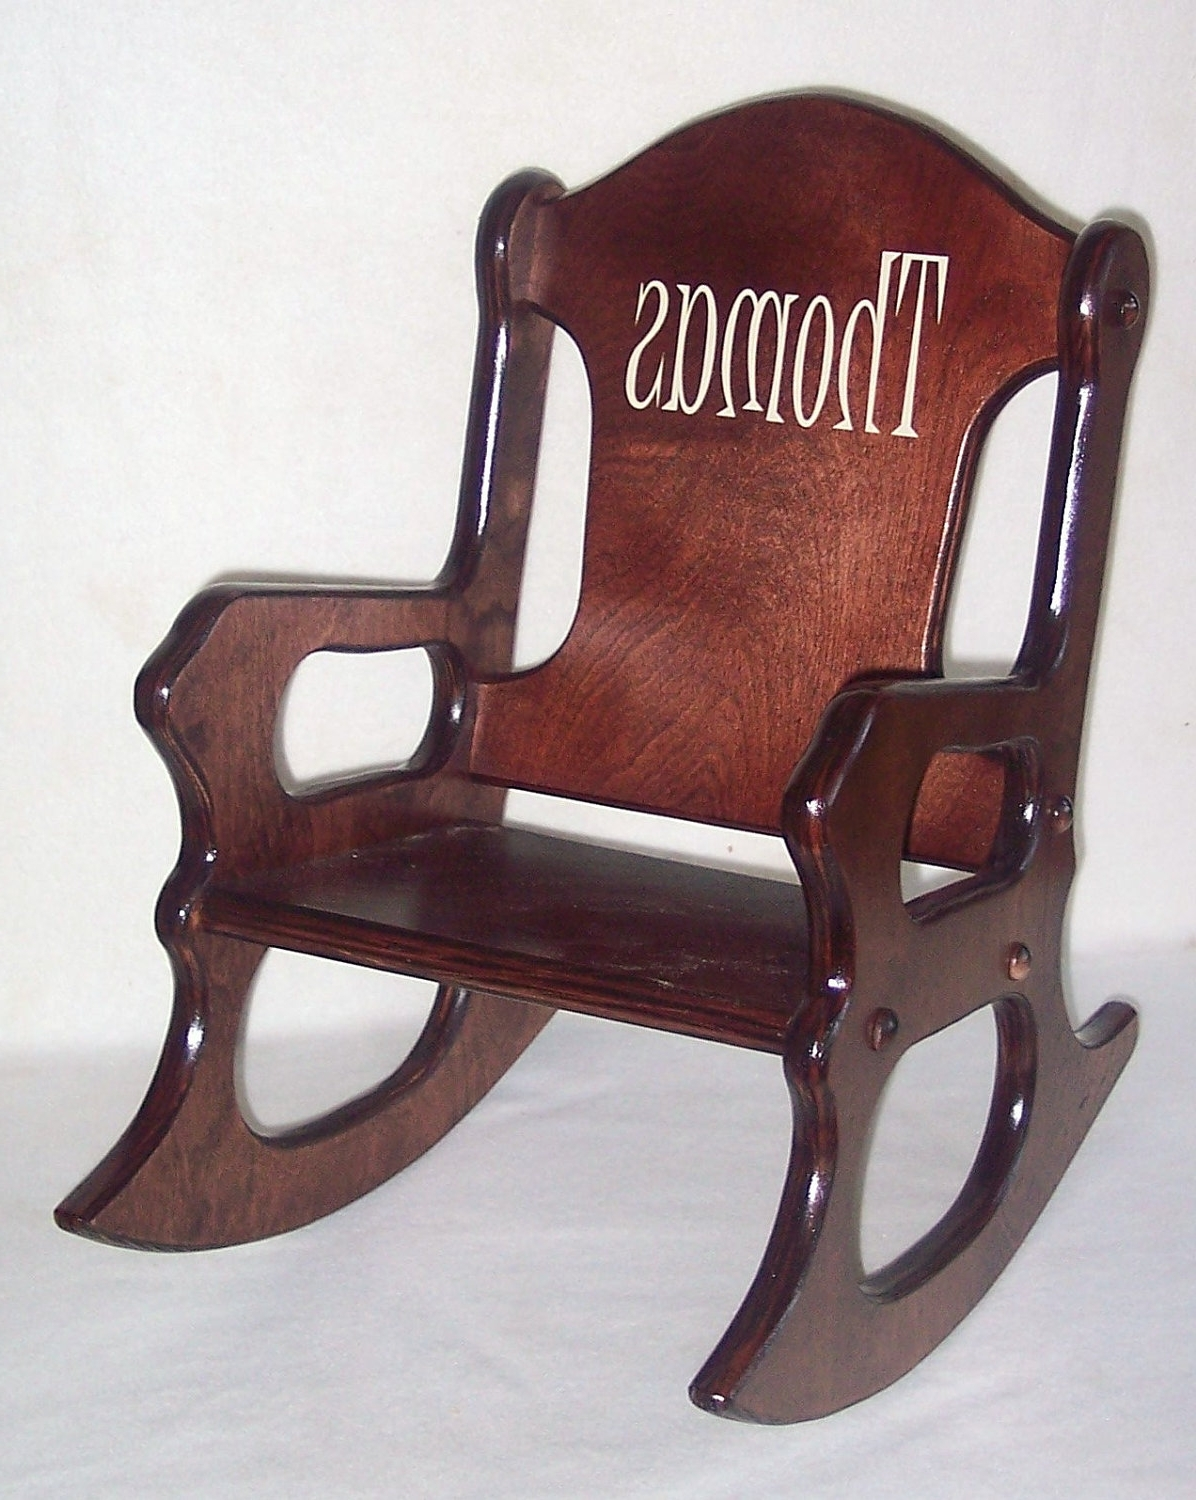 Wooden Kids Rocking Chair Personalized Cherry Finish, Kid Wood Chair Throughout Well Known Rocking Chairs For Toddlers (View 19 of 20)